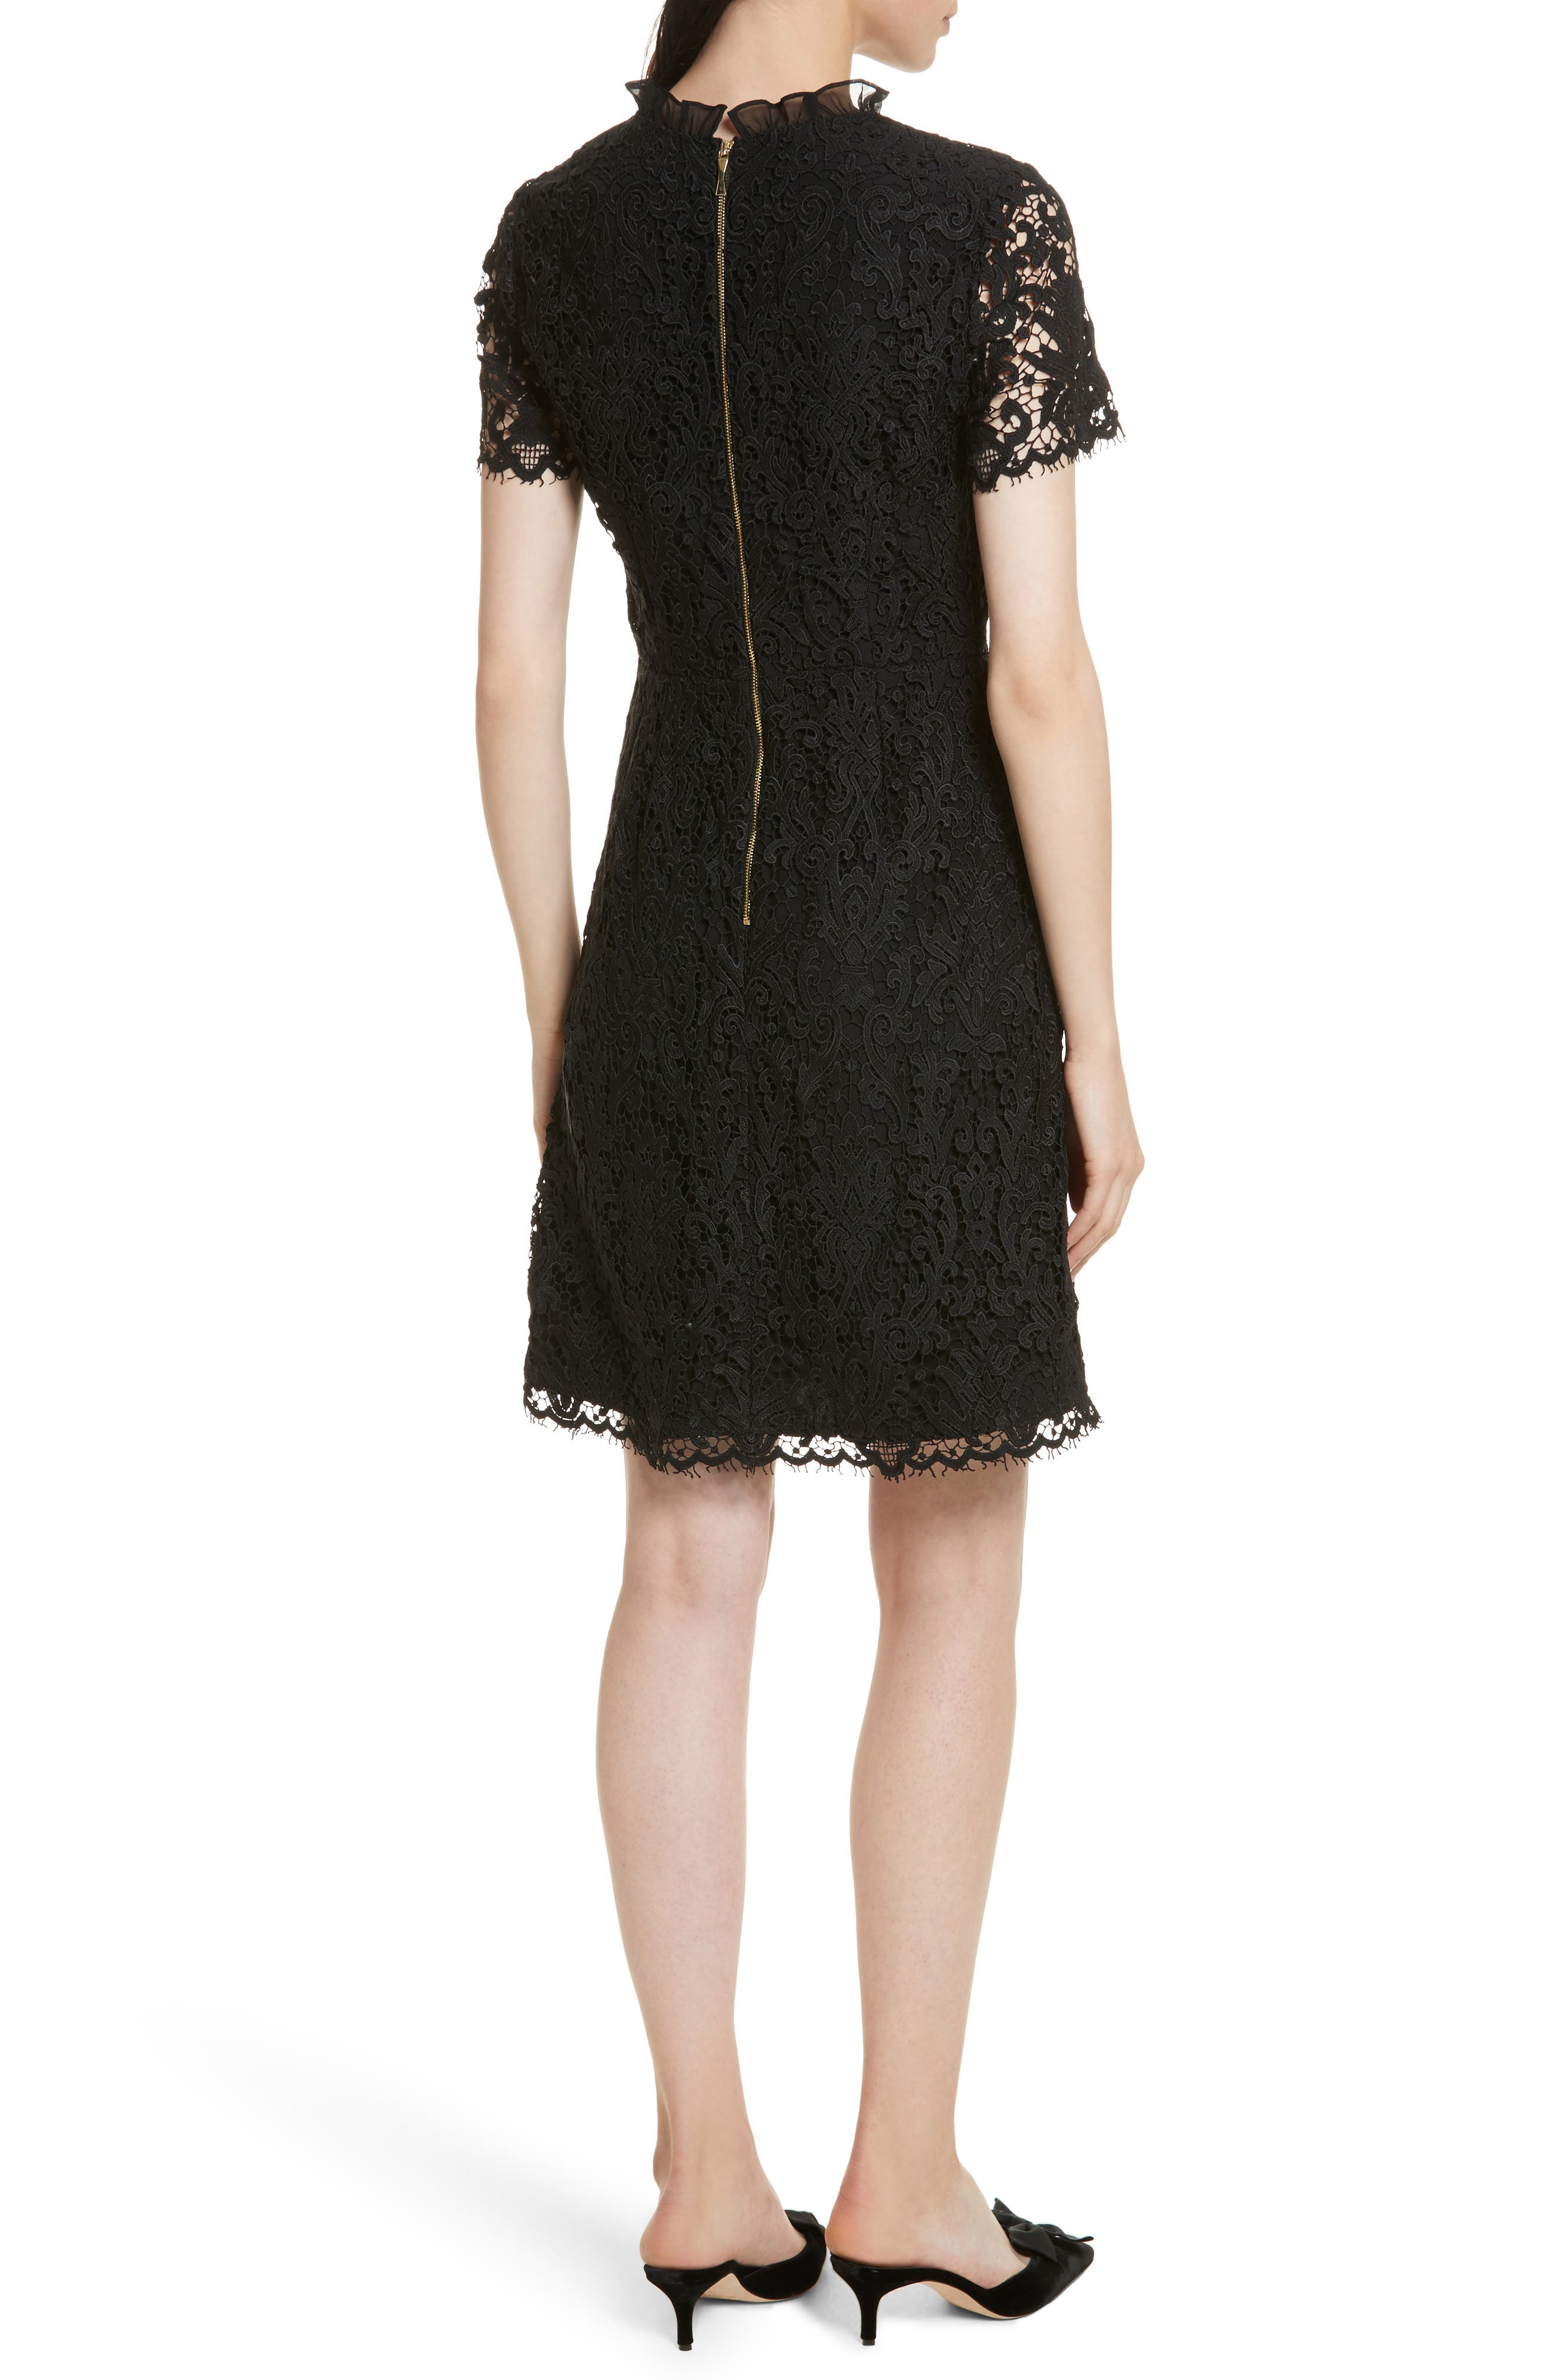 tapestry lace dress,                             Alternate thumbnail 2, color,                             001